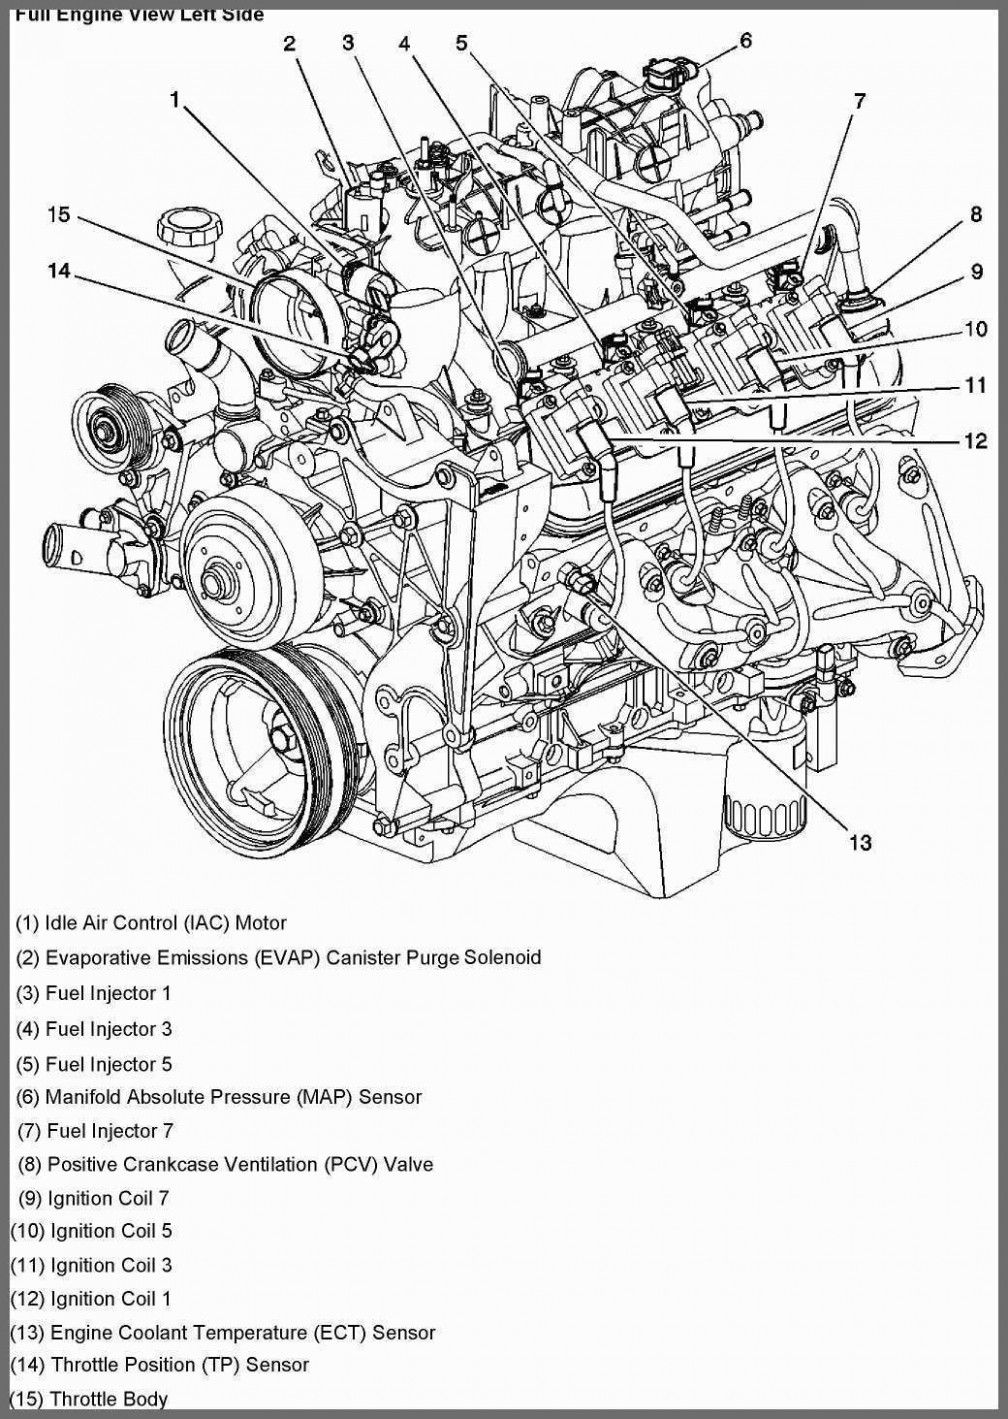 V8 Engine Block Diagram In 2020 Chevy Trucks 1984 Chevy Truck Truck Engine